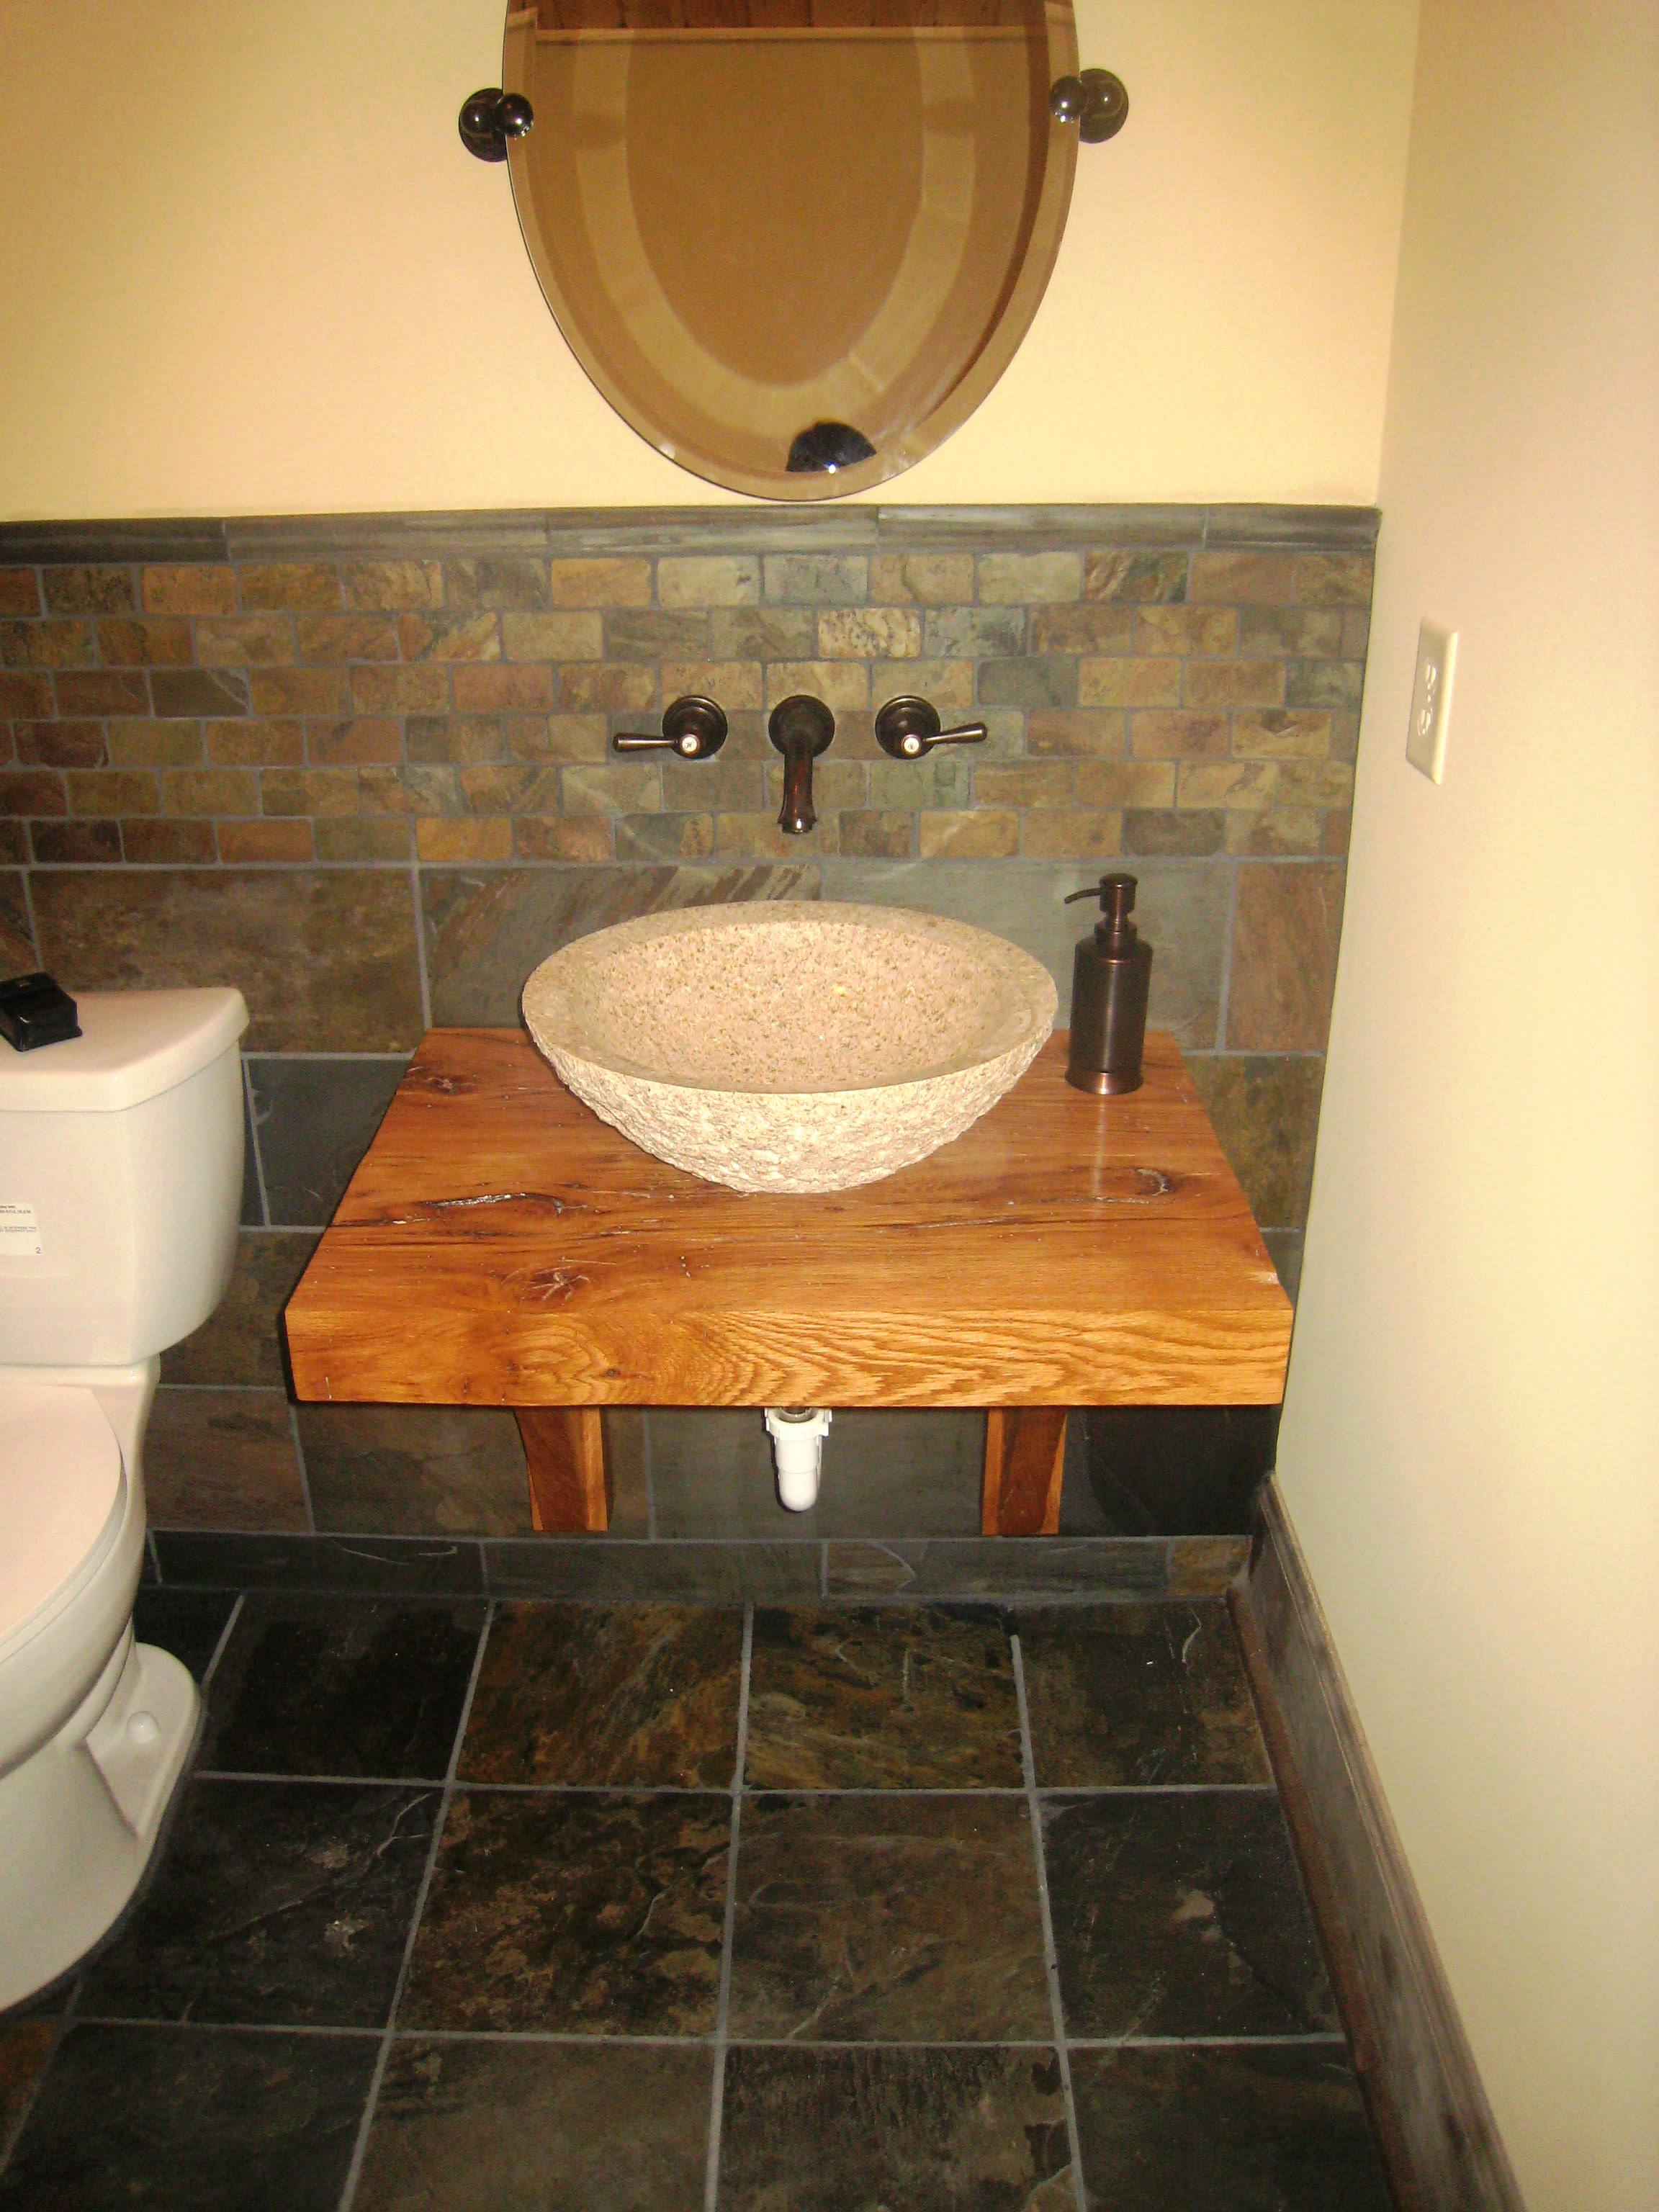 Sink, tile, and new plumbing installed by home remodeling company Hedrick Creative Building, LLC in Lexington, NC